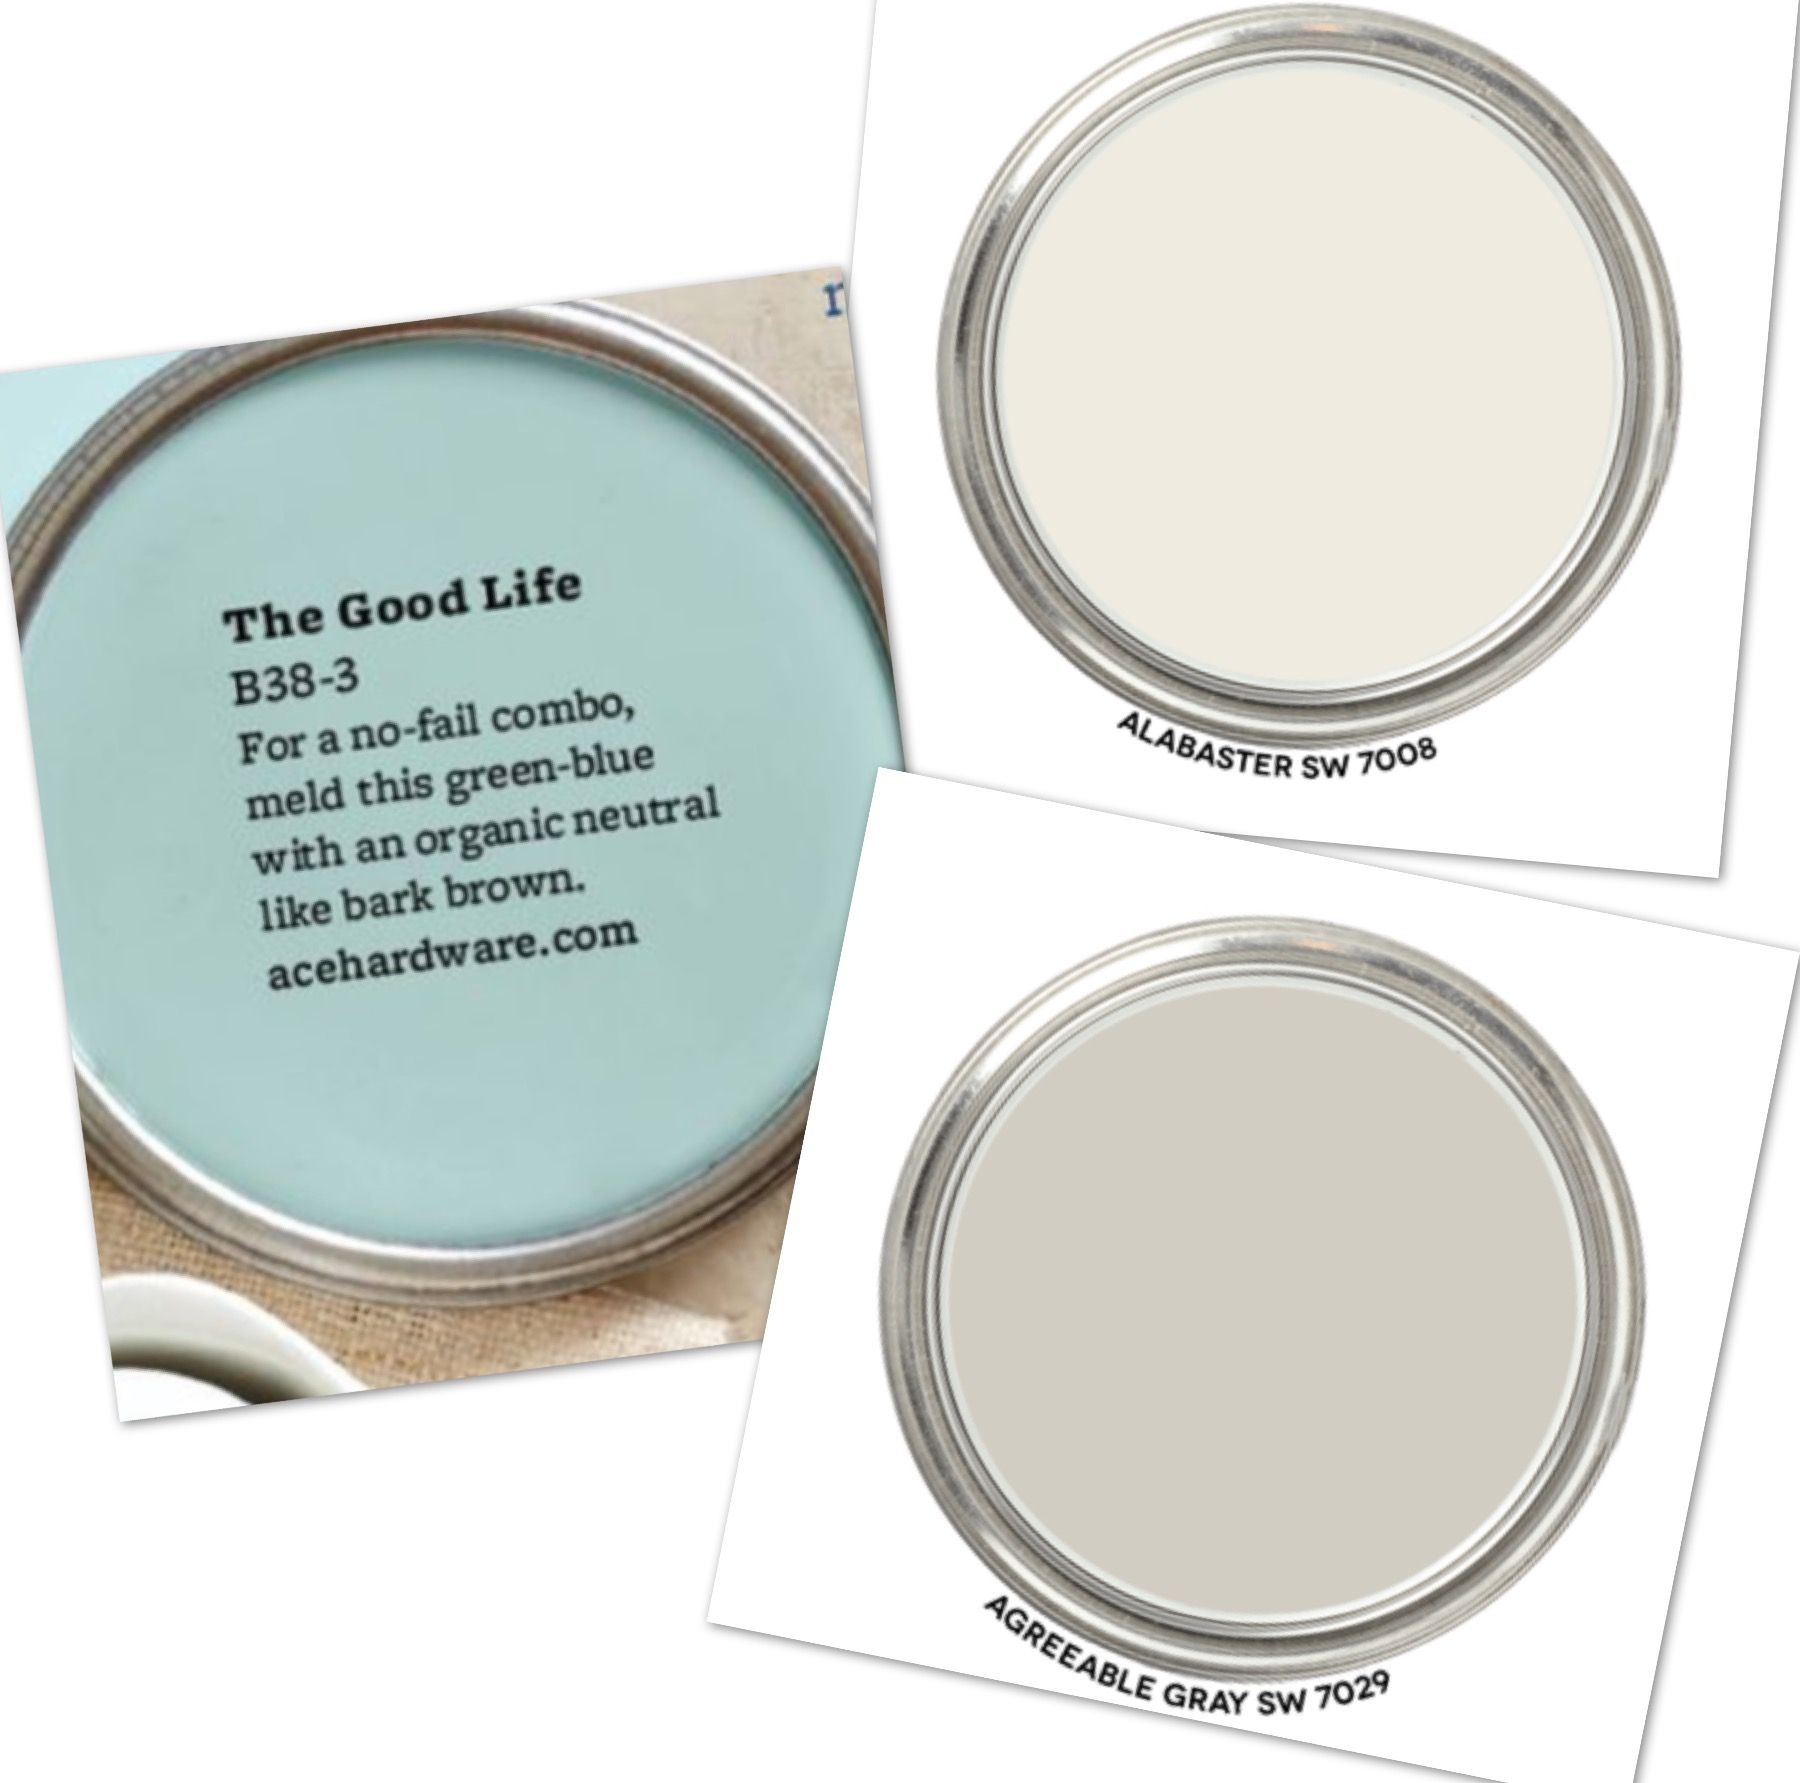 Pin By Nan Lewis On Paint In 2020 Paint Colors For Home House